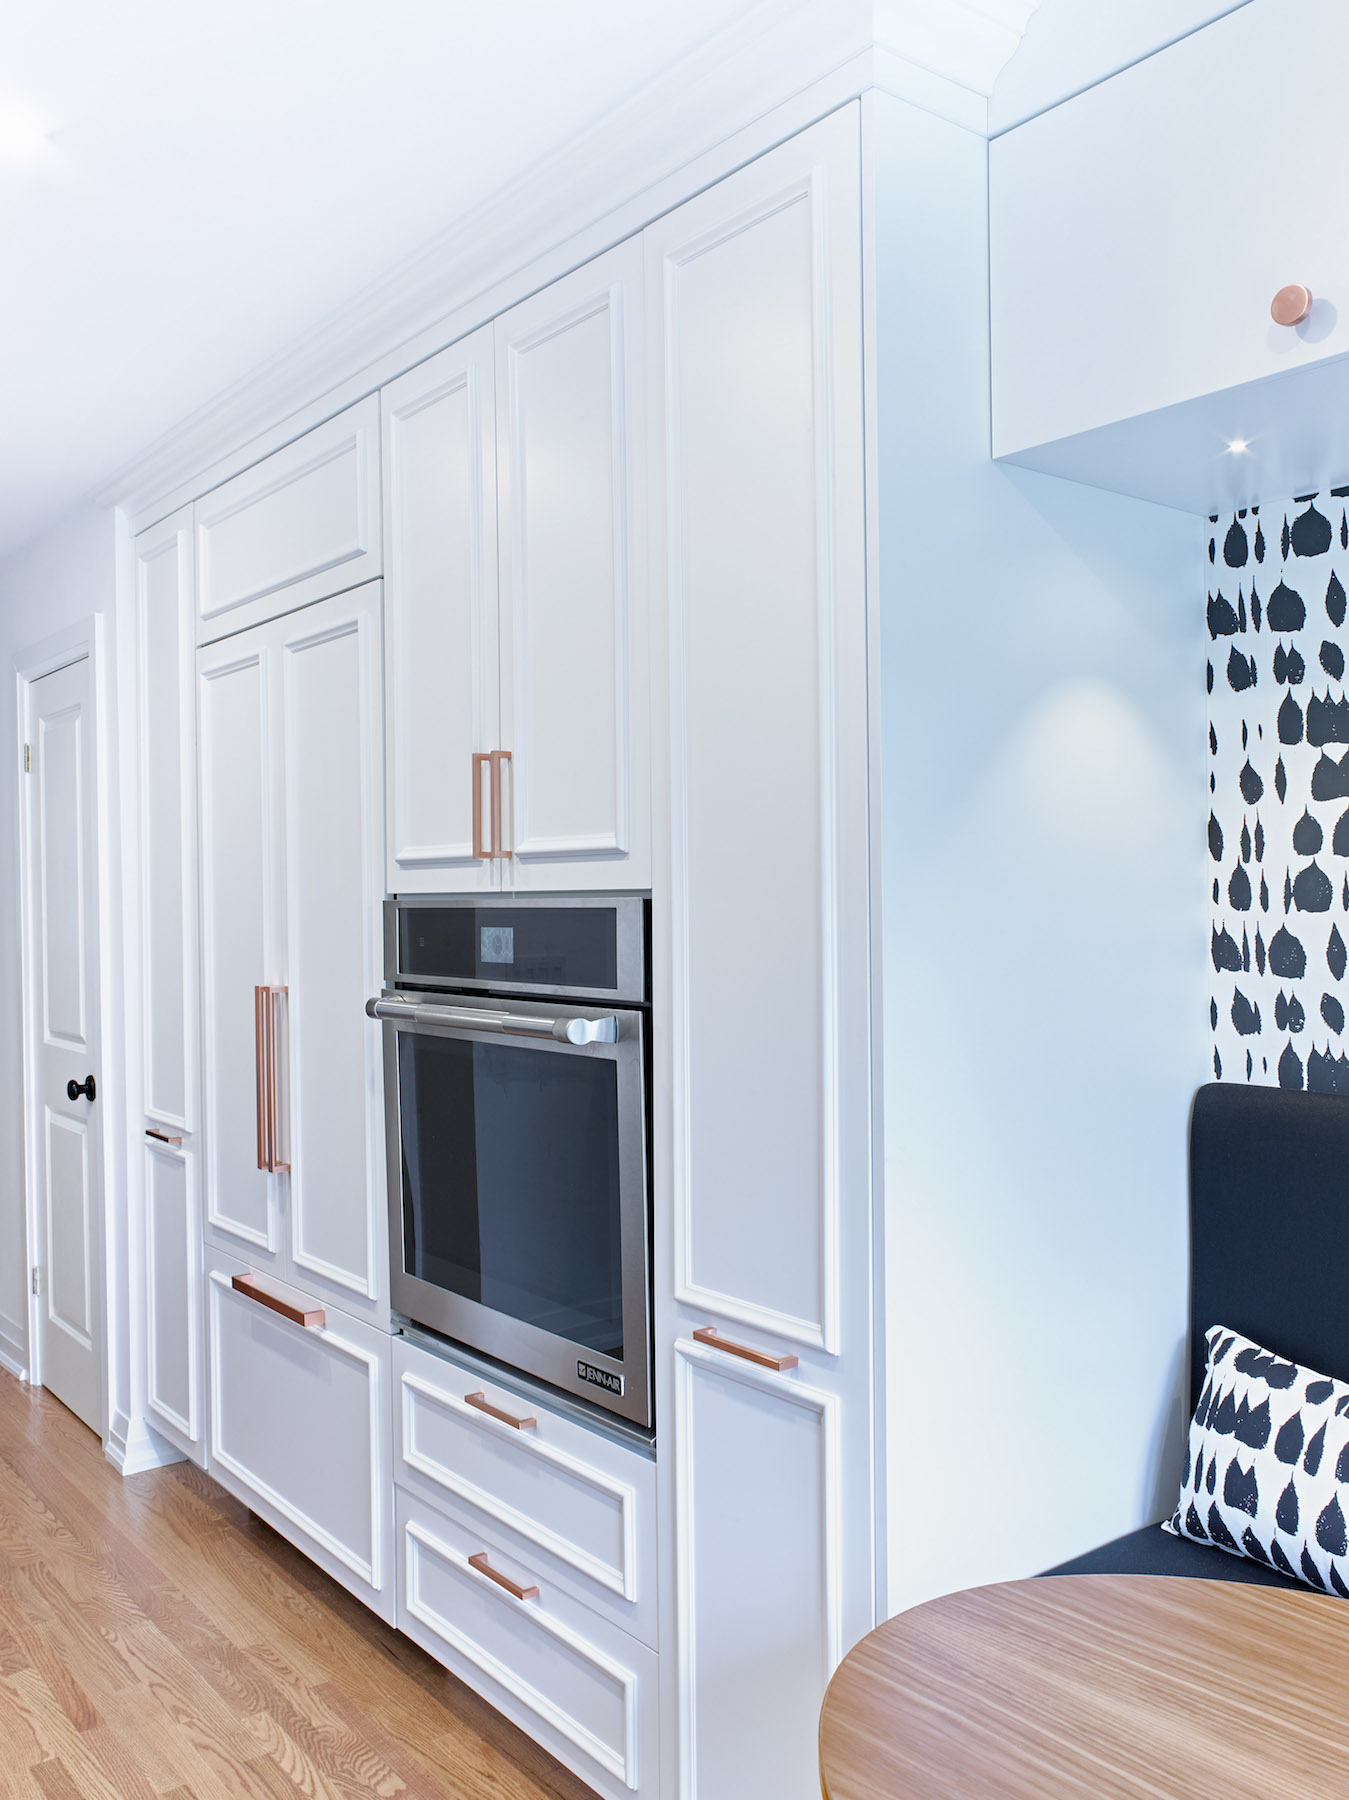 Tall Pantry with Fridge and Wall Oven